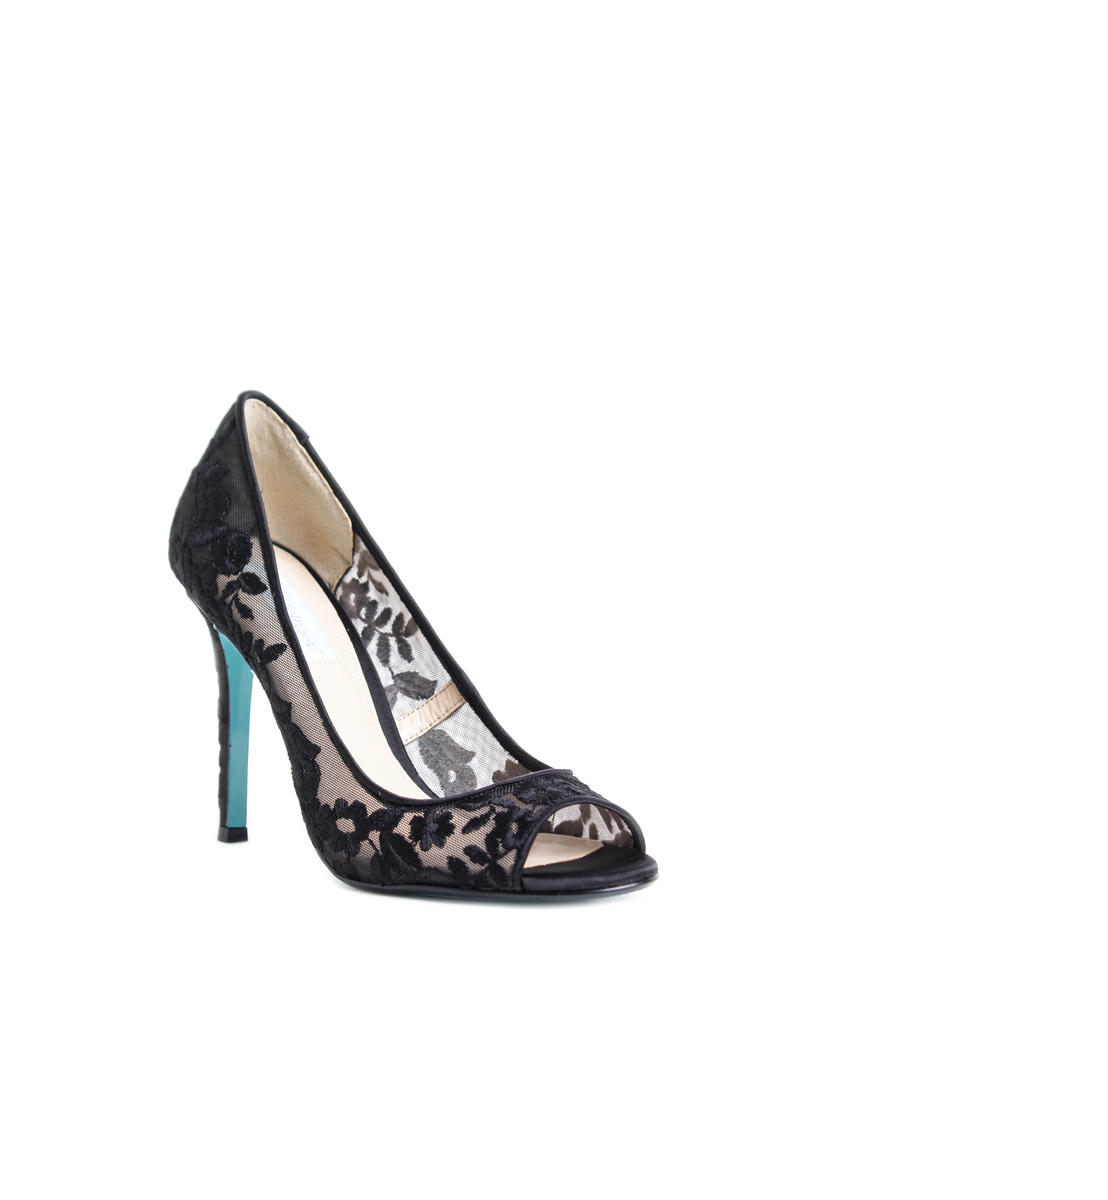 Embroidered Evening Pumps